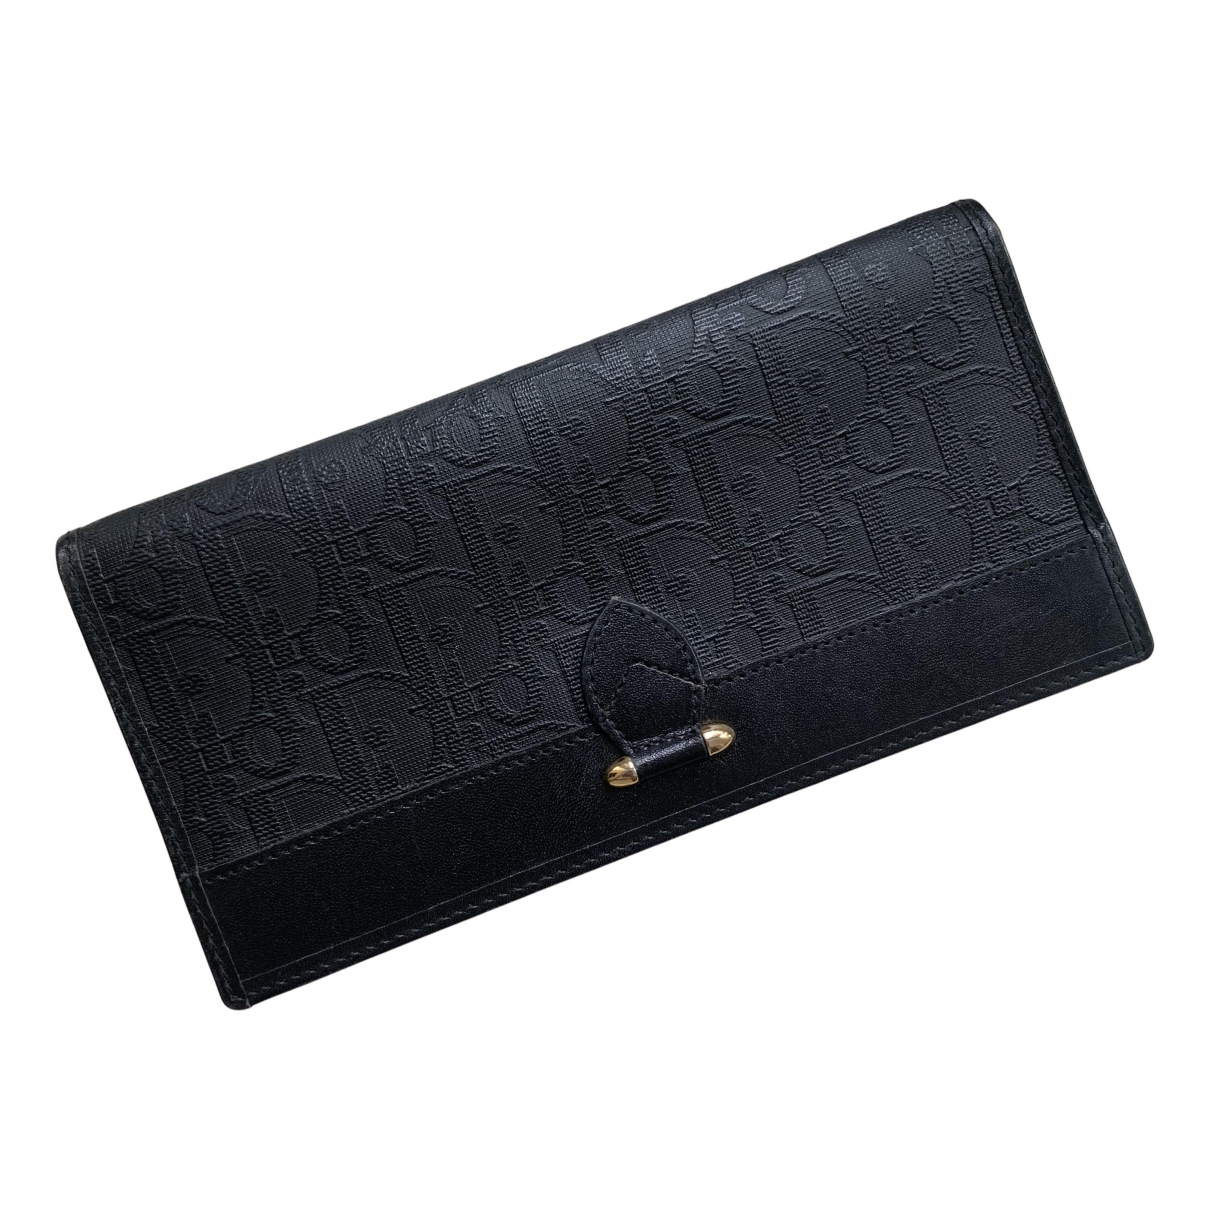 Dior N Black Leather wallet for Women N